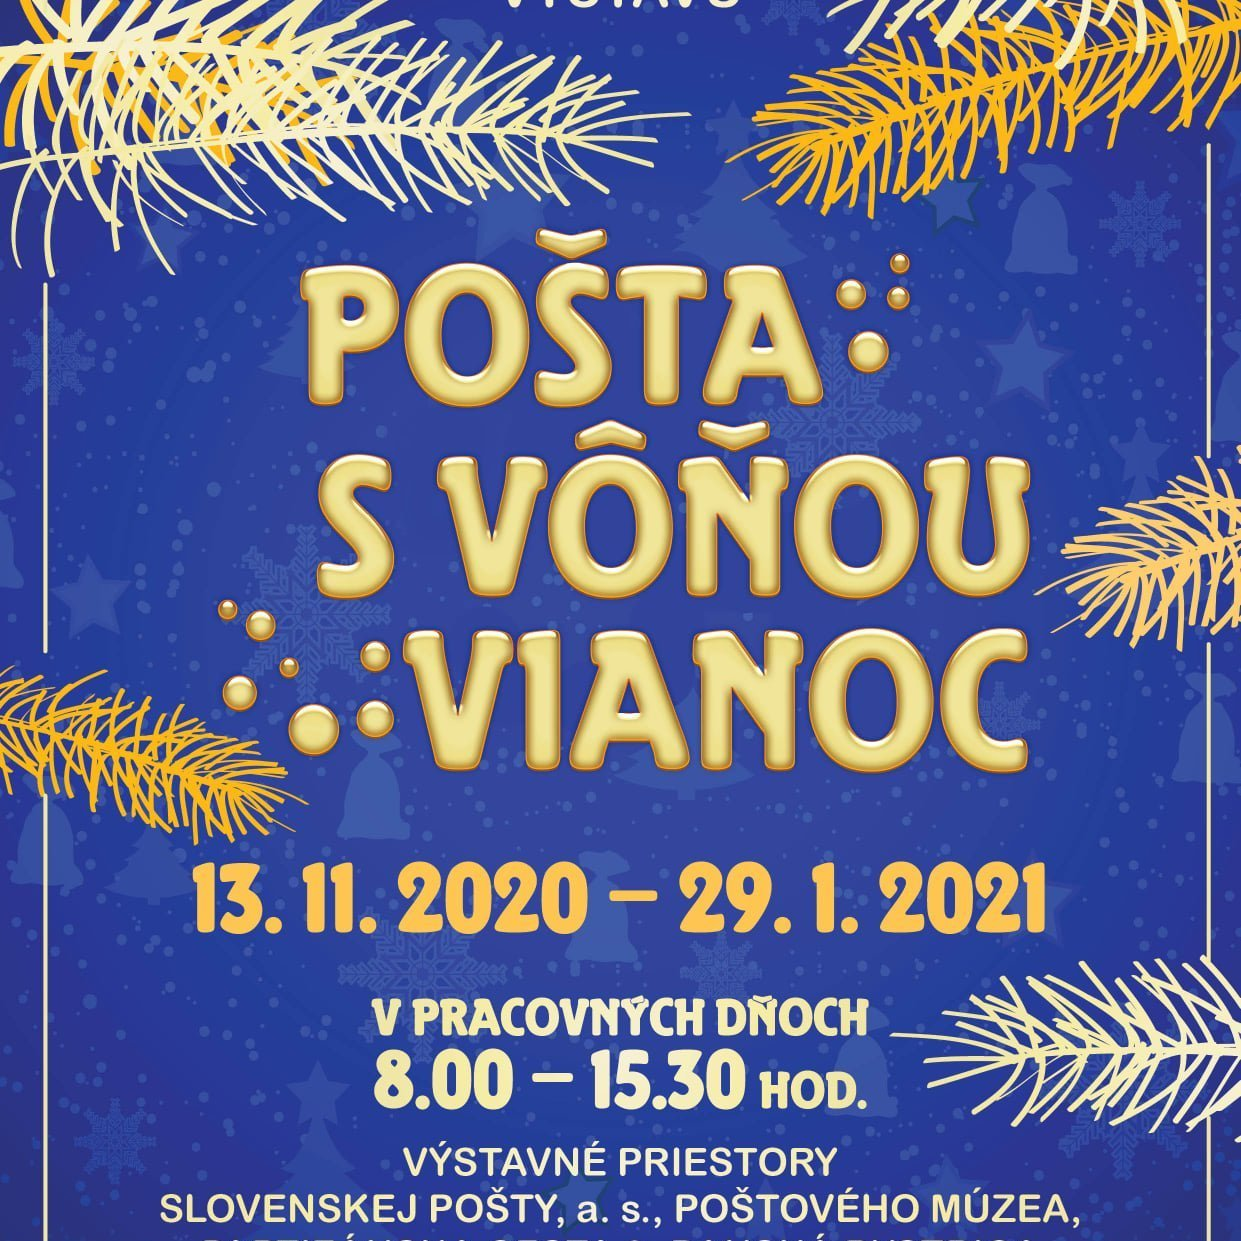 events/2020/11/admid120536/120536.jpeg